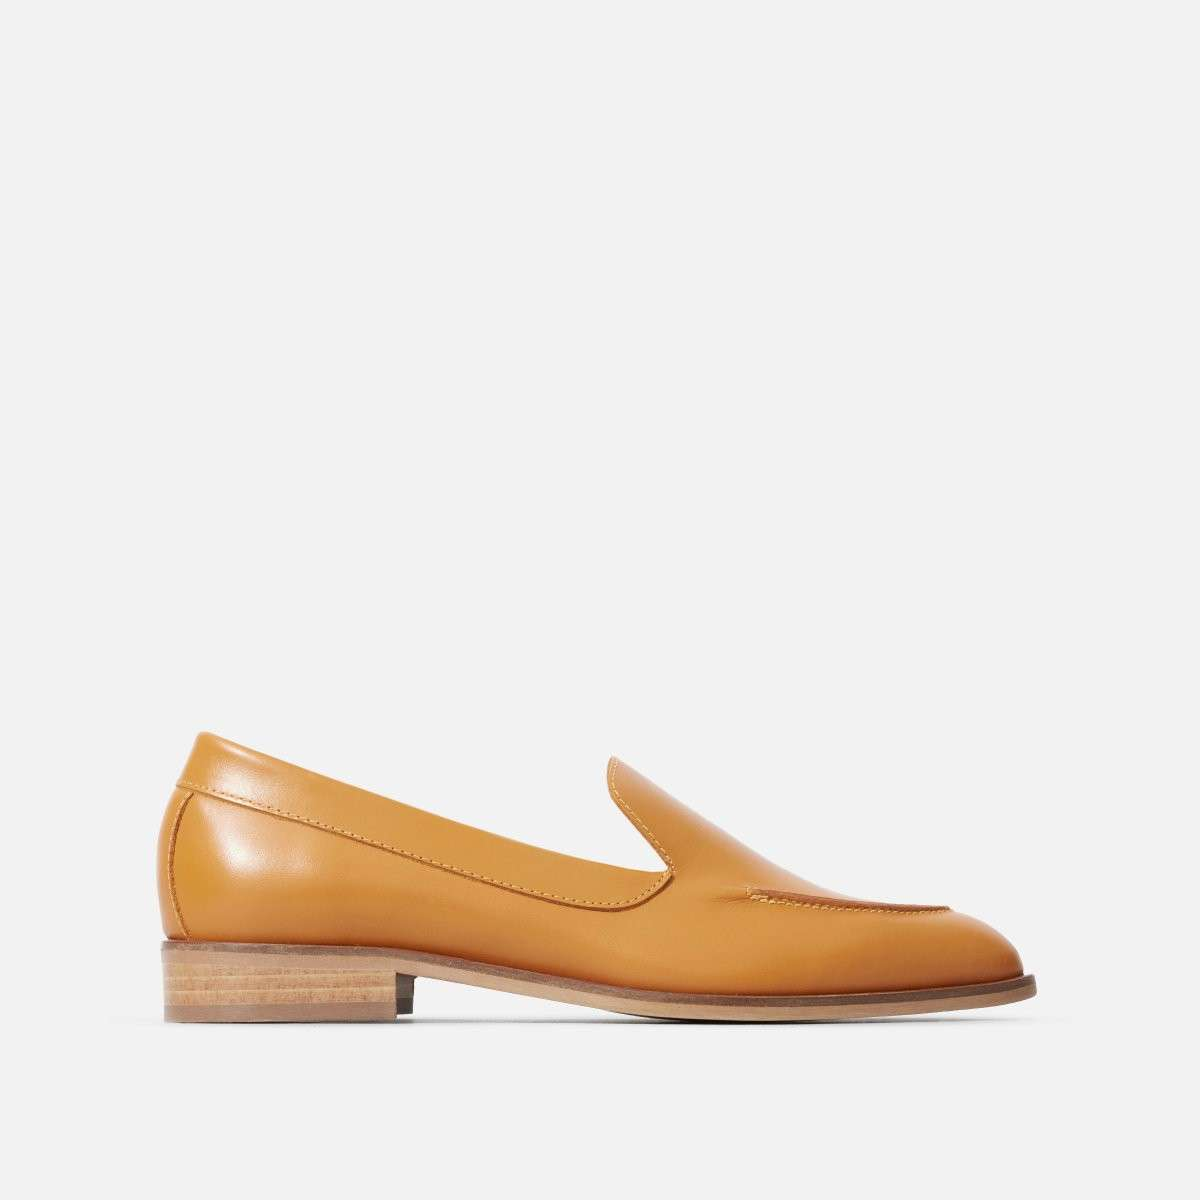 The Modern Loafer 乐福鞋